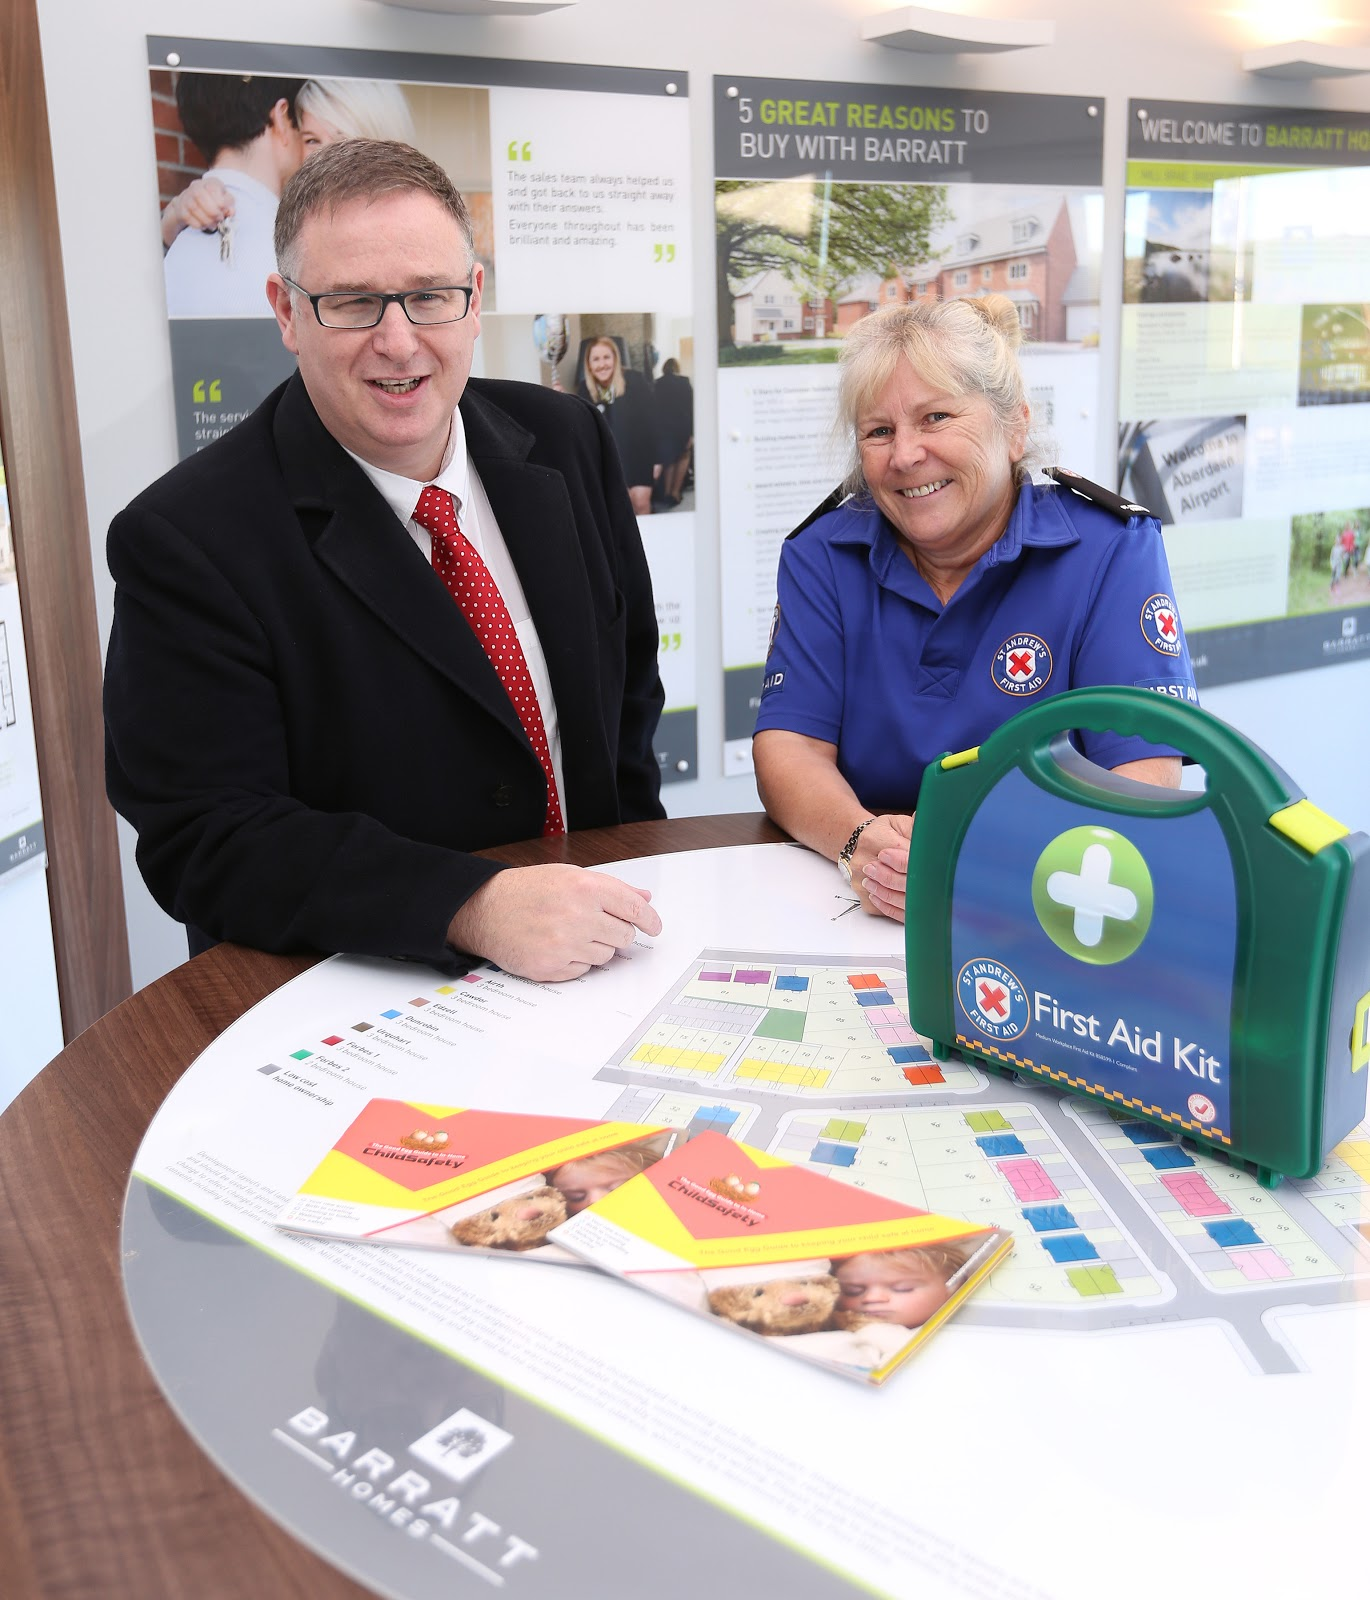 Barratt and David Wilson Promote Health and Safety at Home